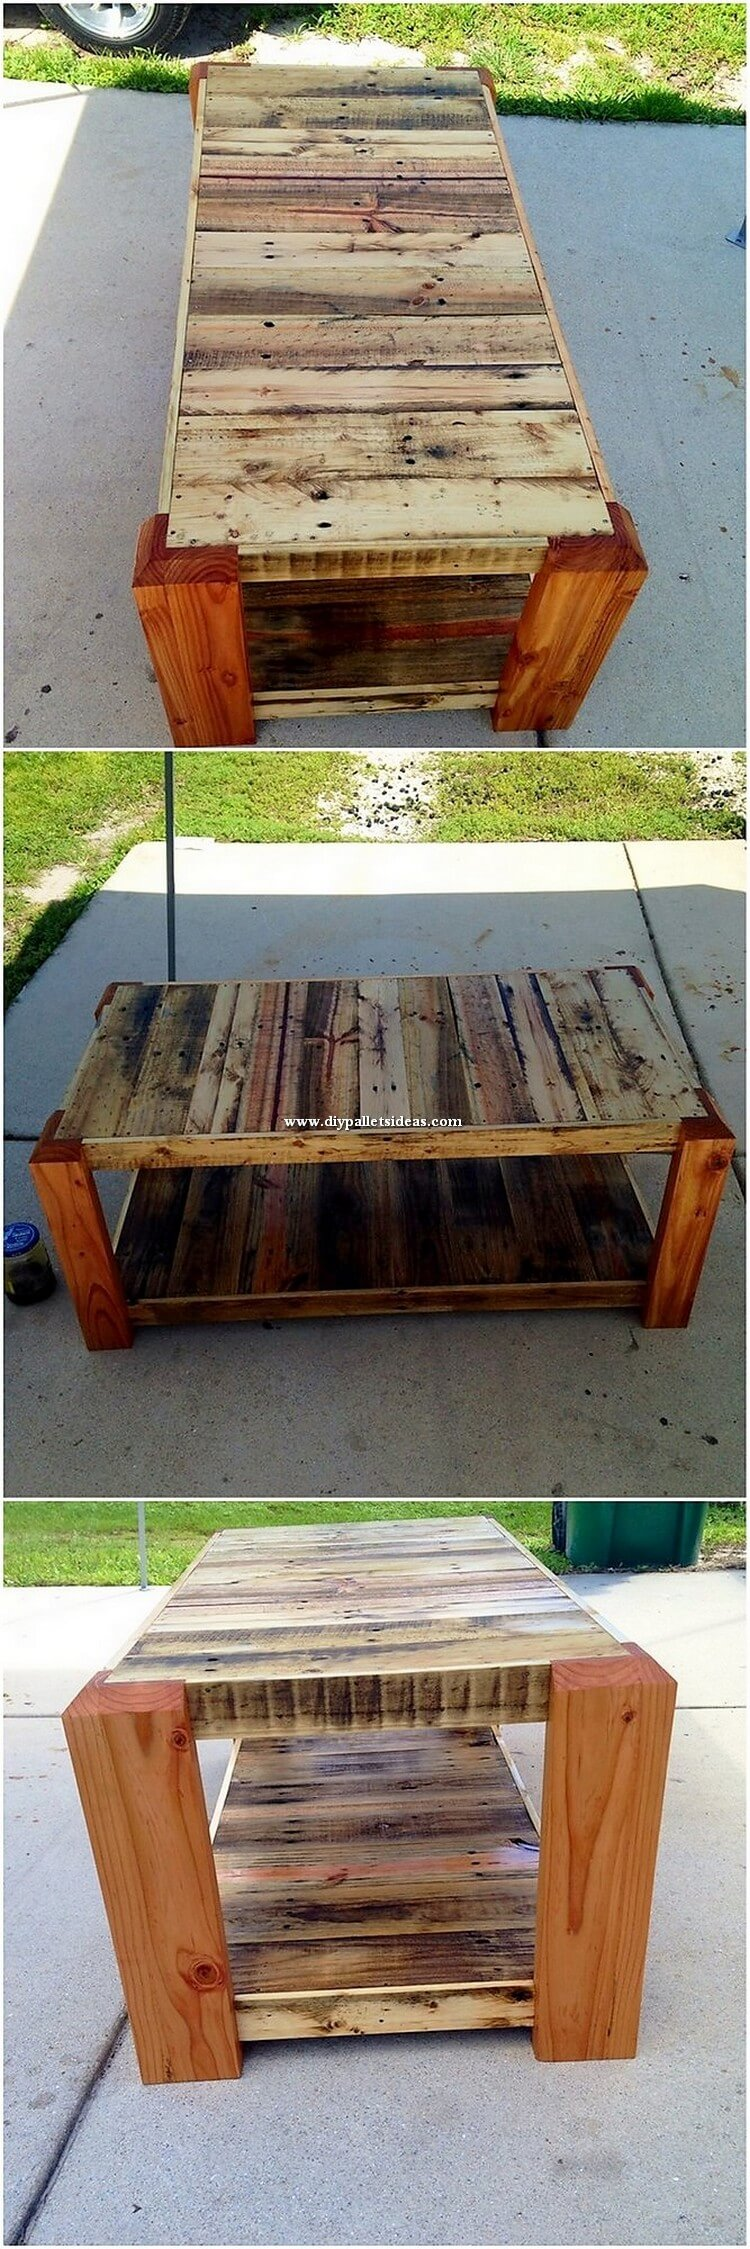 Pallet Table Project